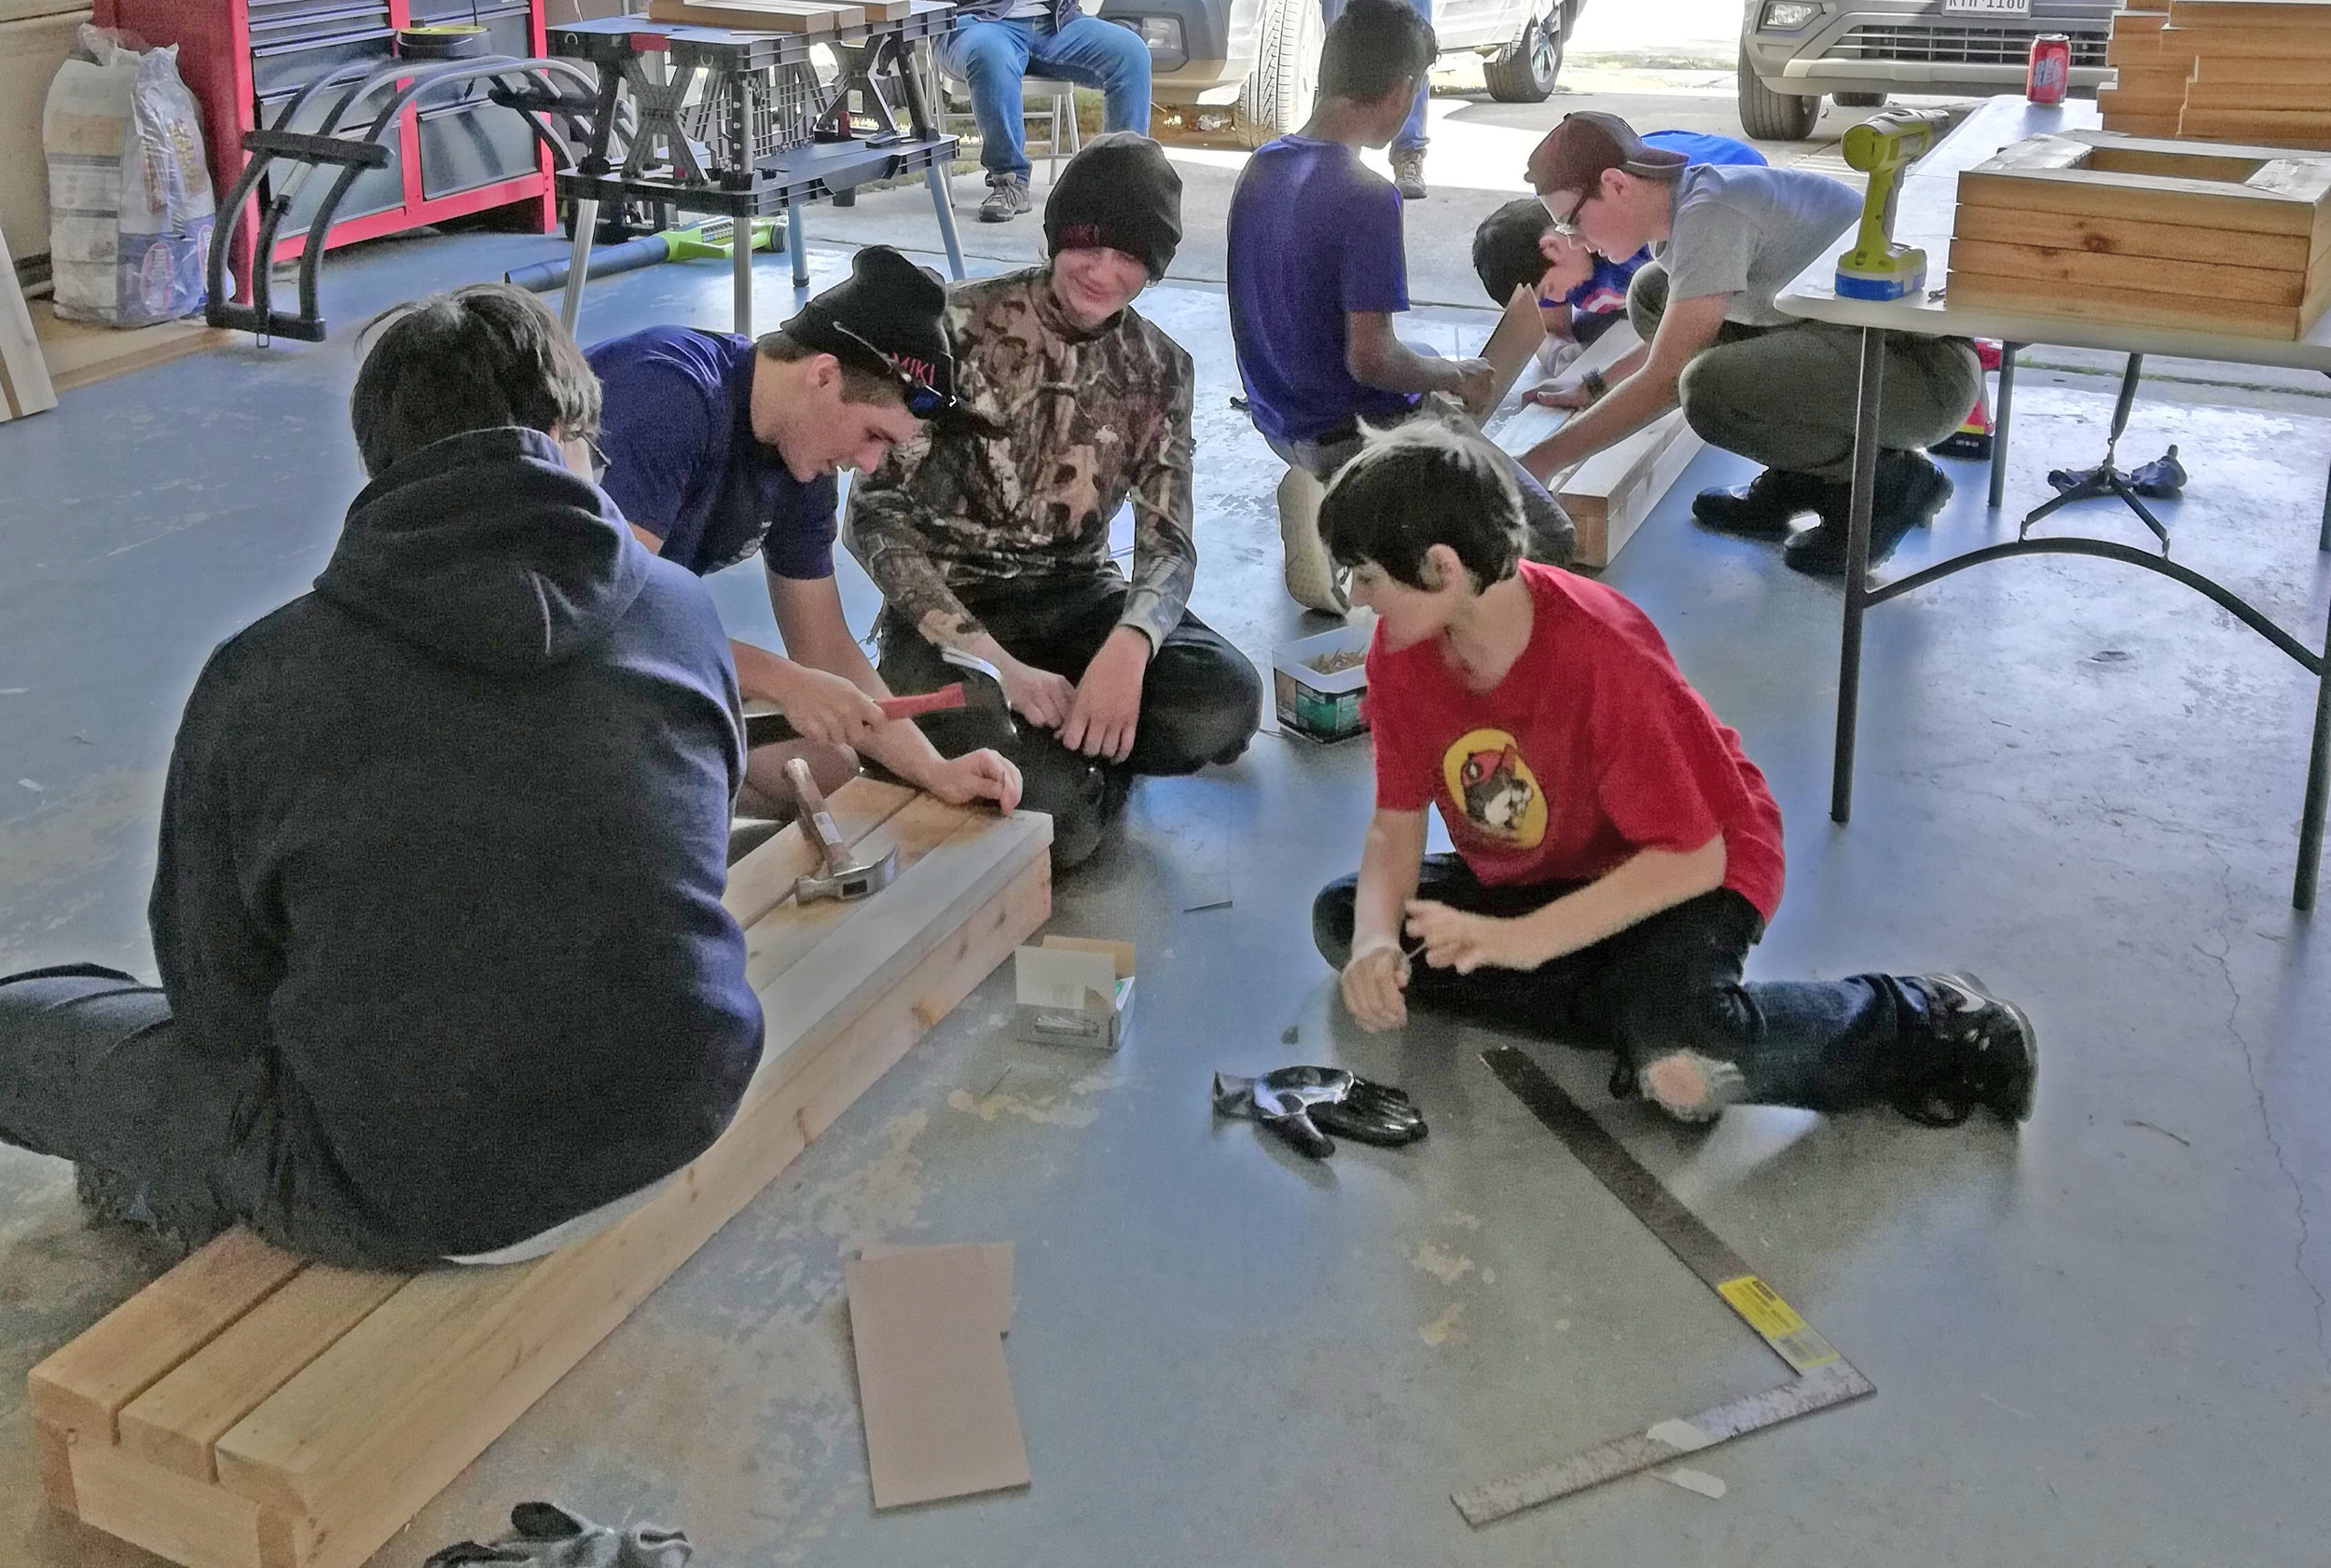 Troop 198 scouts building the planter benches.